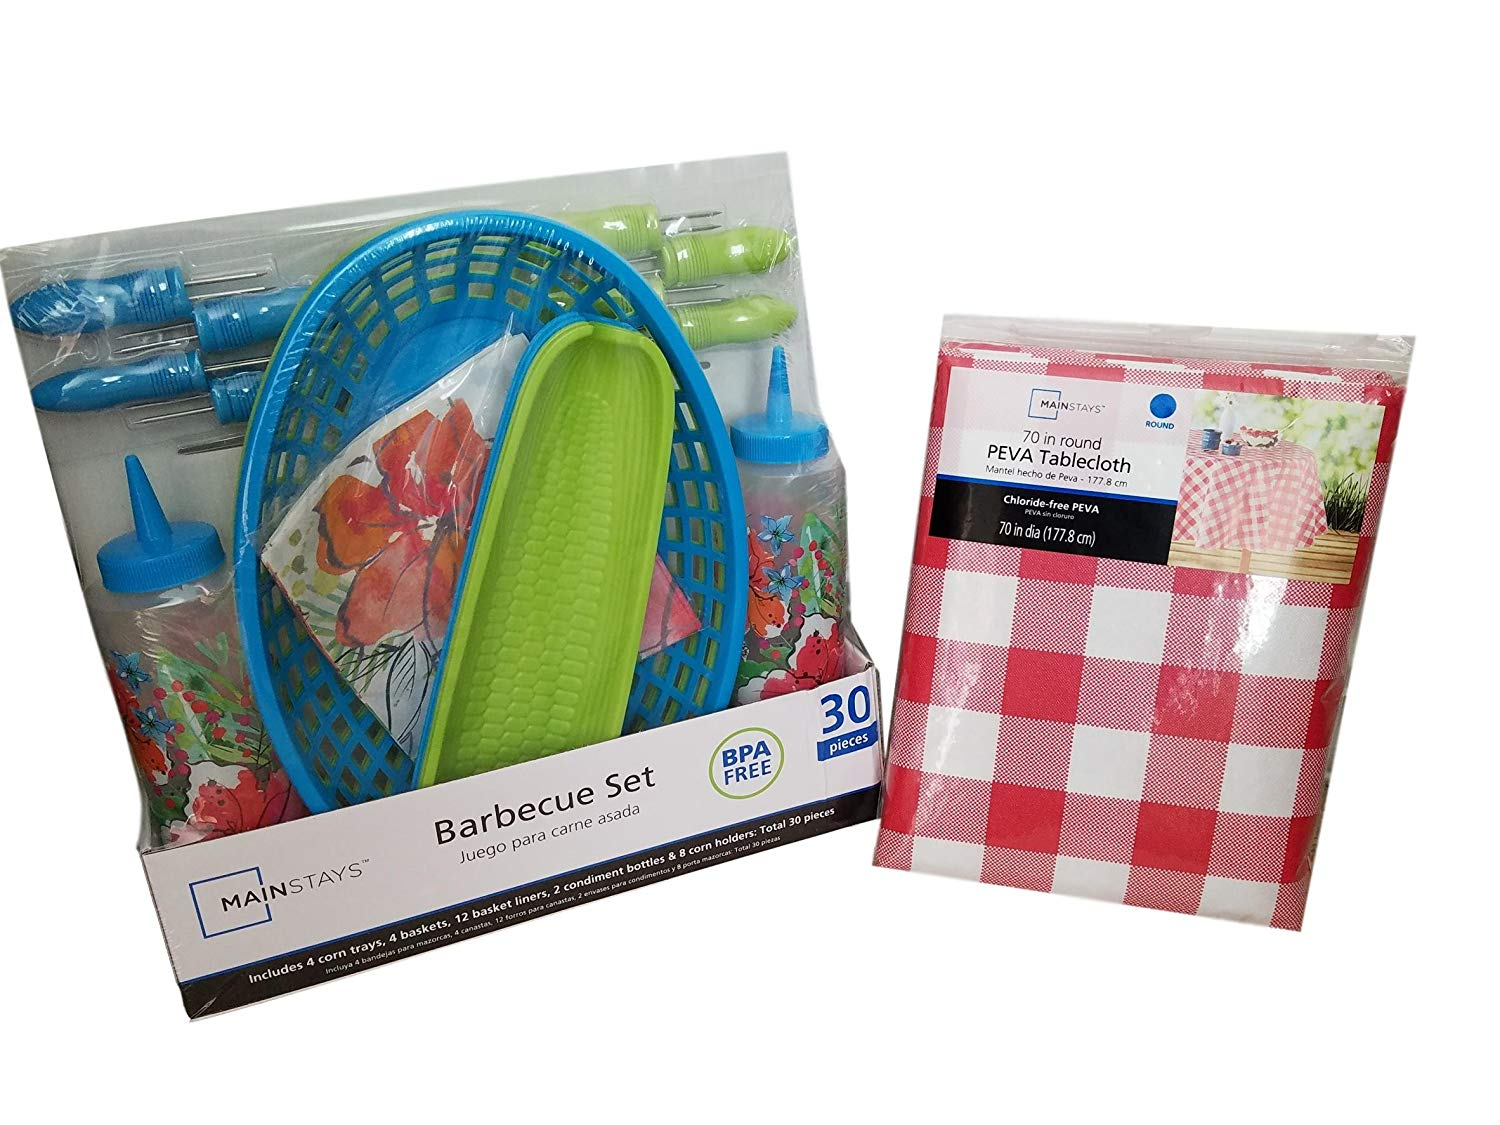 BBQ Picnic Serving Set with Plastic Hamburger Baskets, Floral Food Basket Liners, Corn Trays with Corn Cob Holders, Ketchup & Mustard Condiment Bottle Bundle with 70 inch Round Checkered Tablecloth